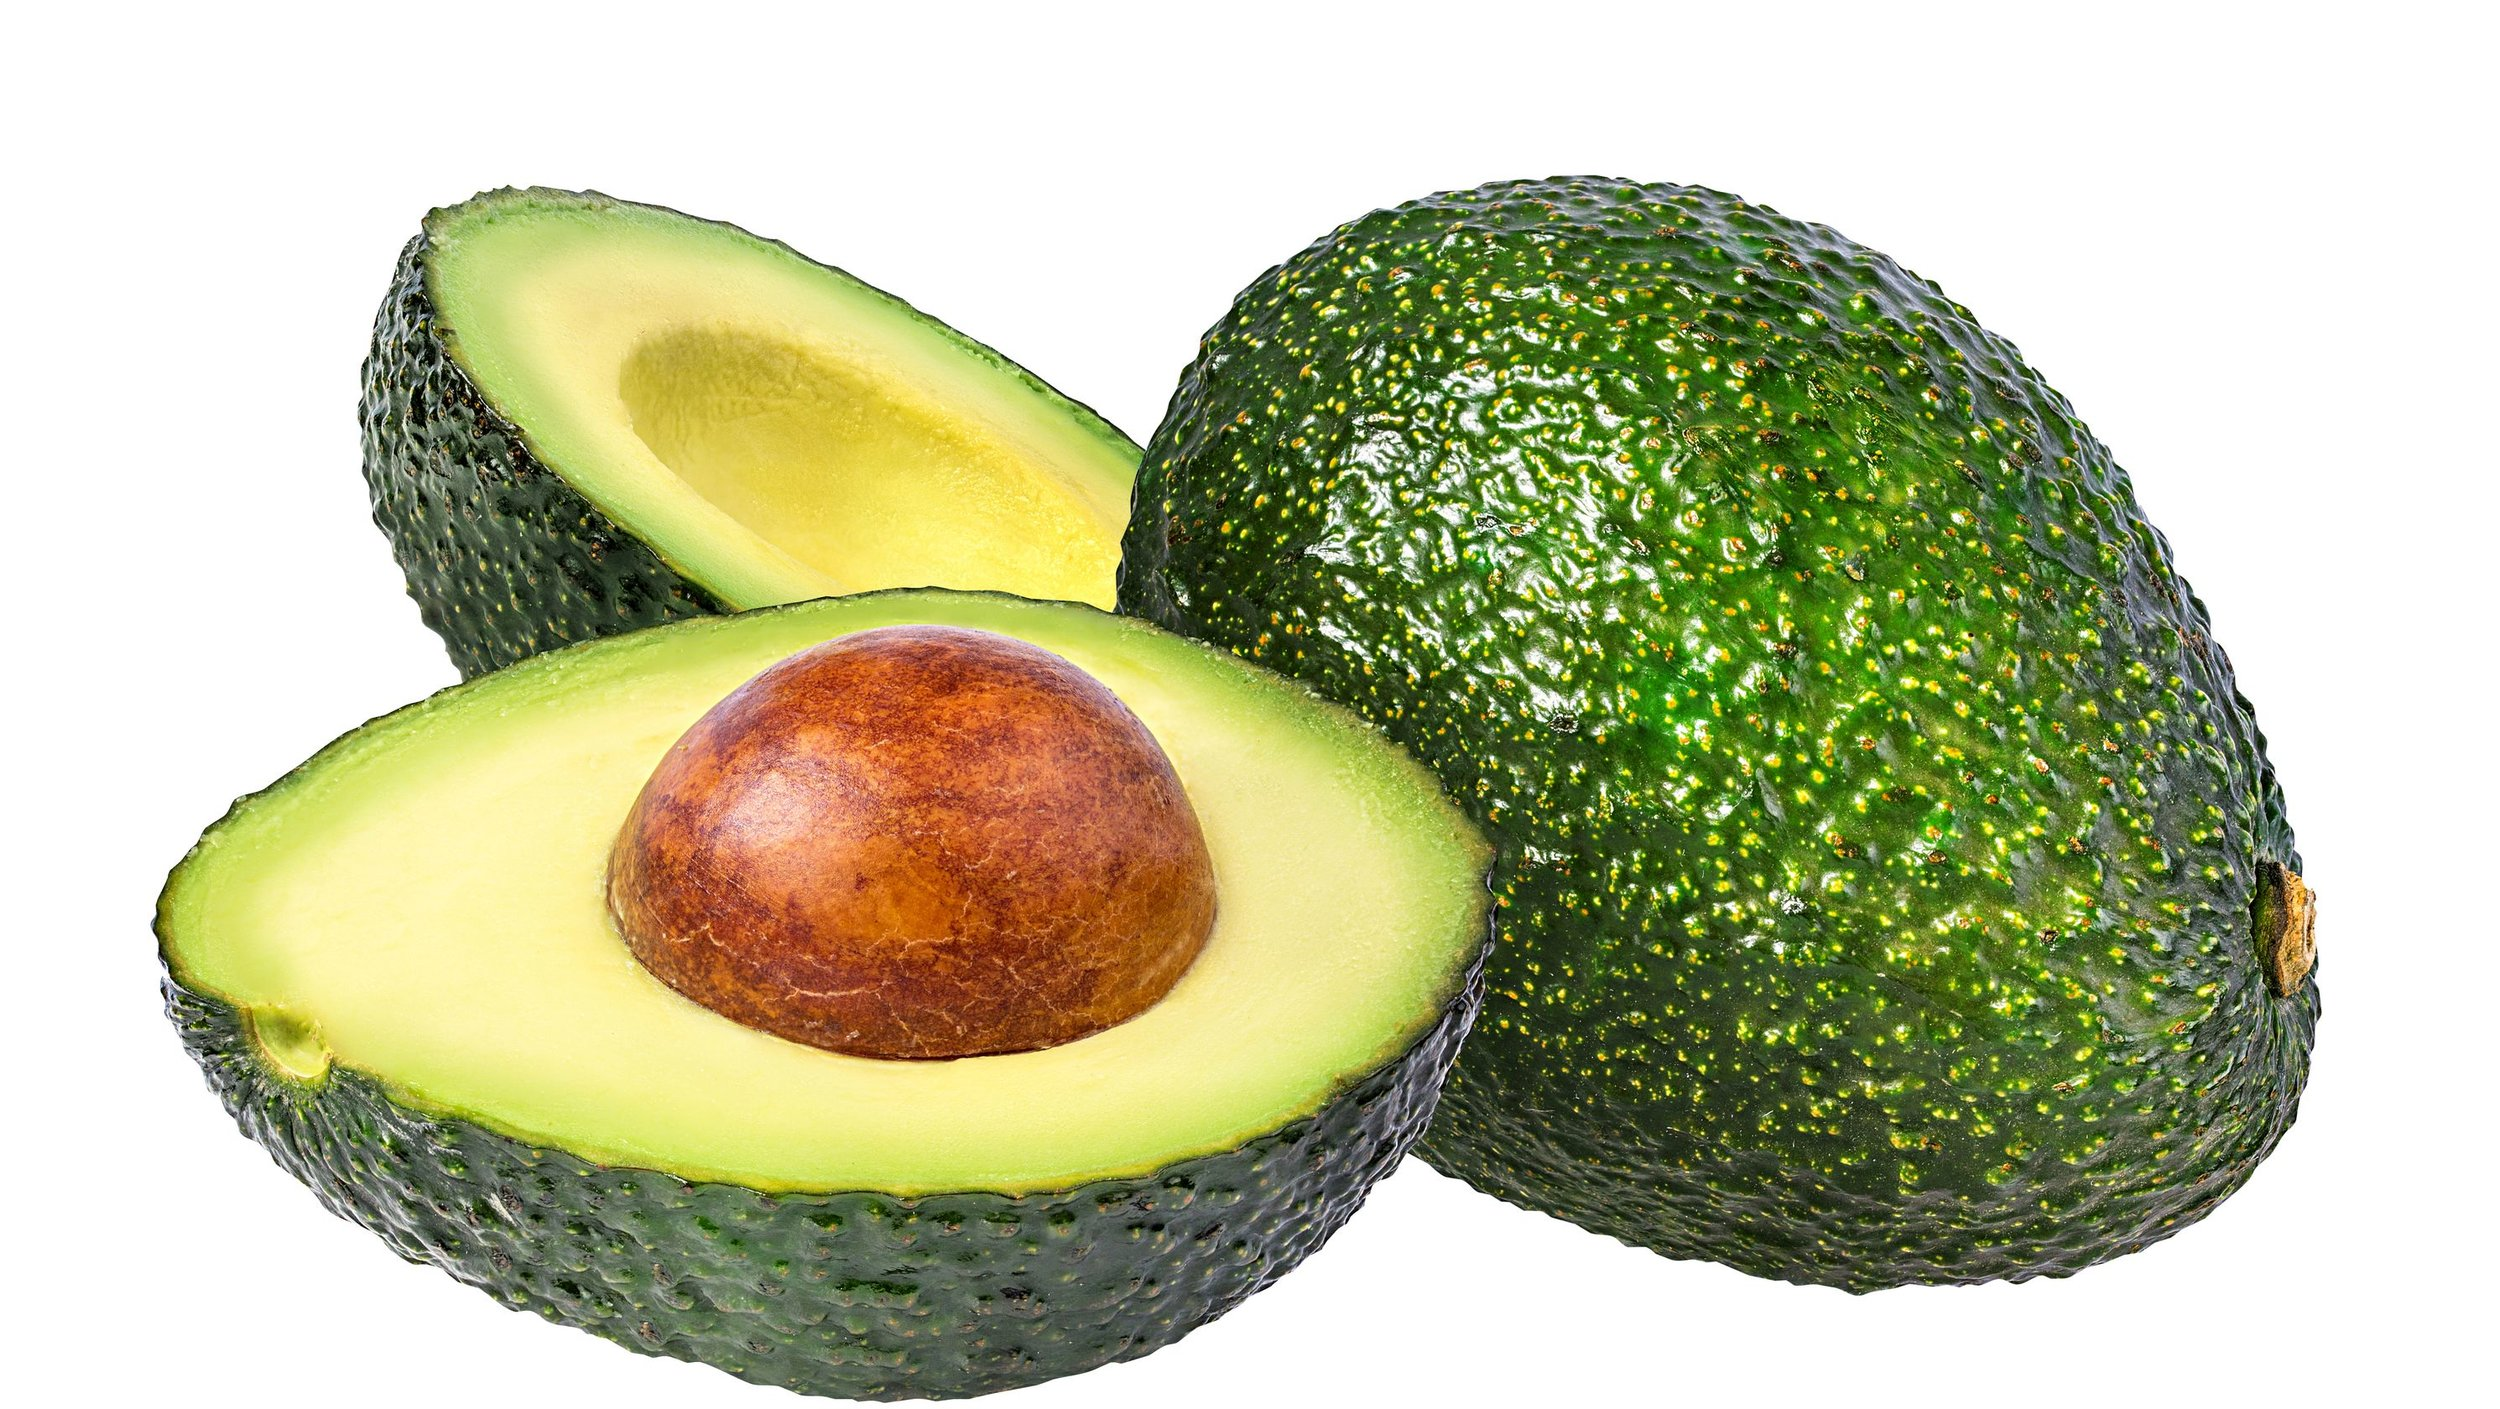 avocados small: 2 for $3large haas: 2 for $4organic: $2.69 -